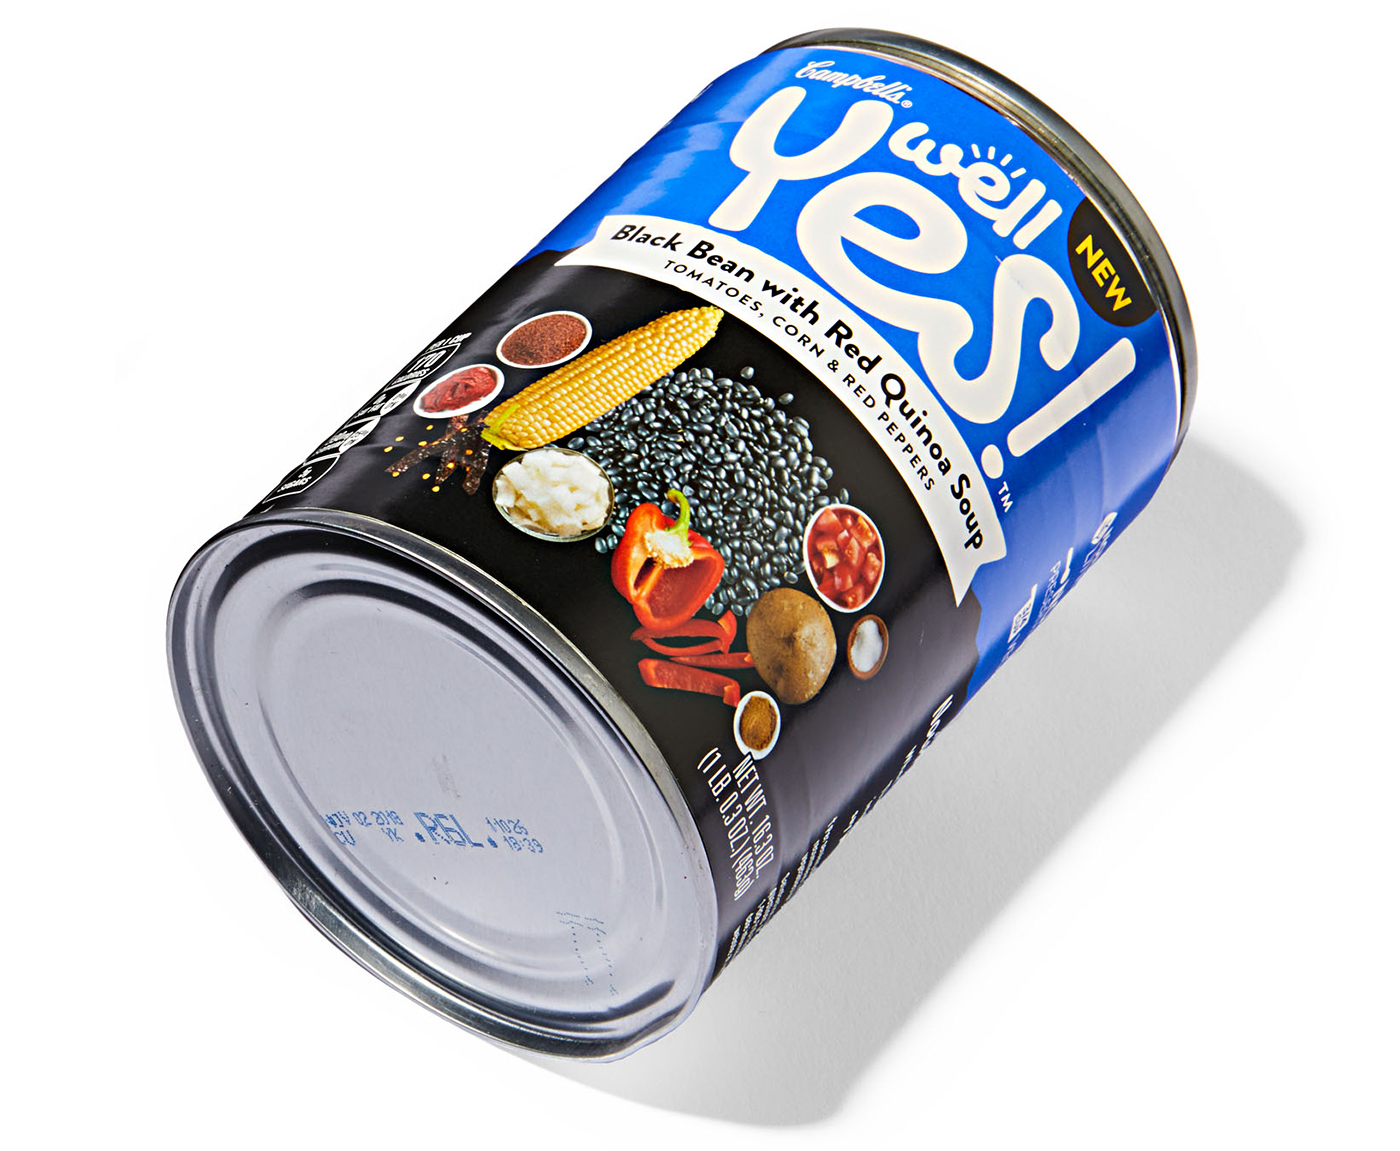 Campbell's Well Yes! Black Bean with Red Quinoa Soup